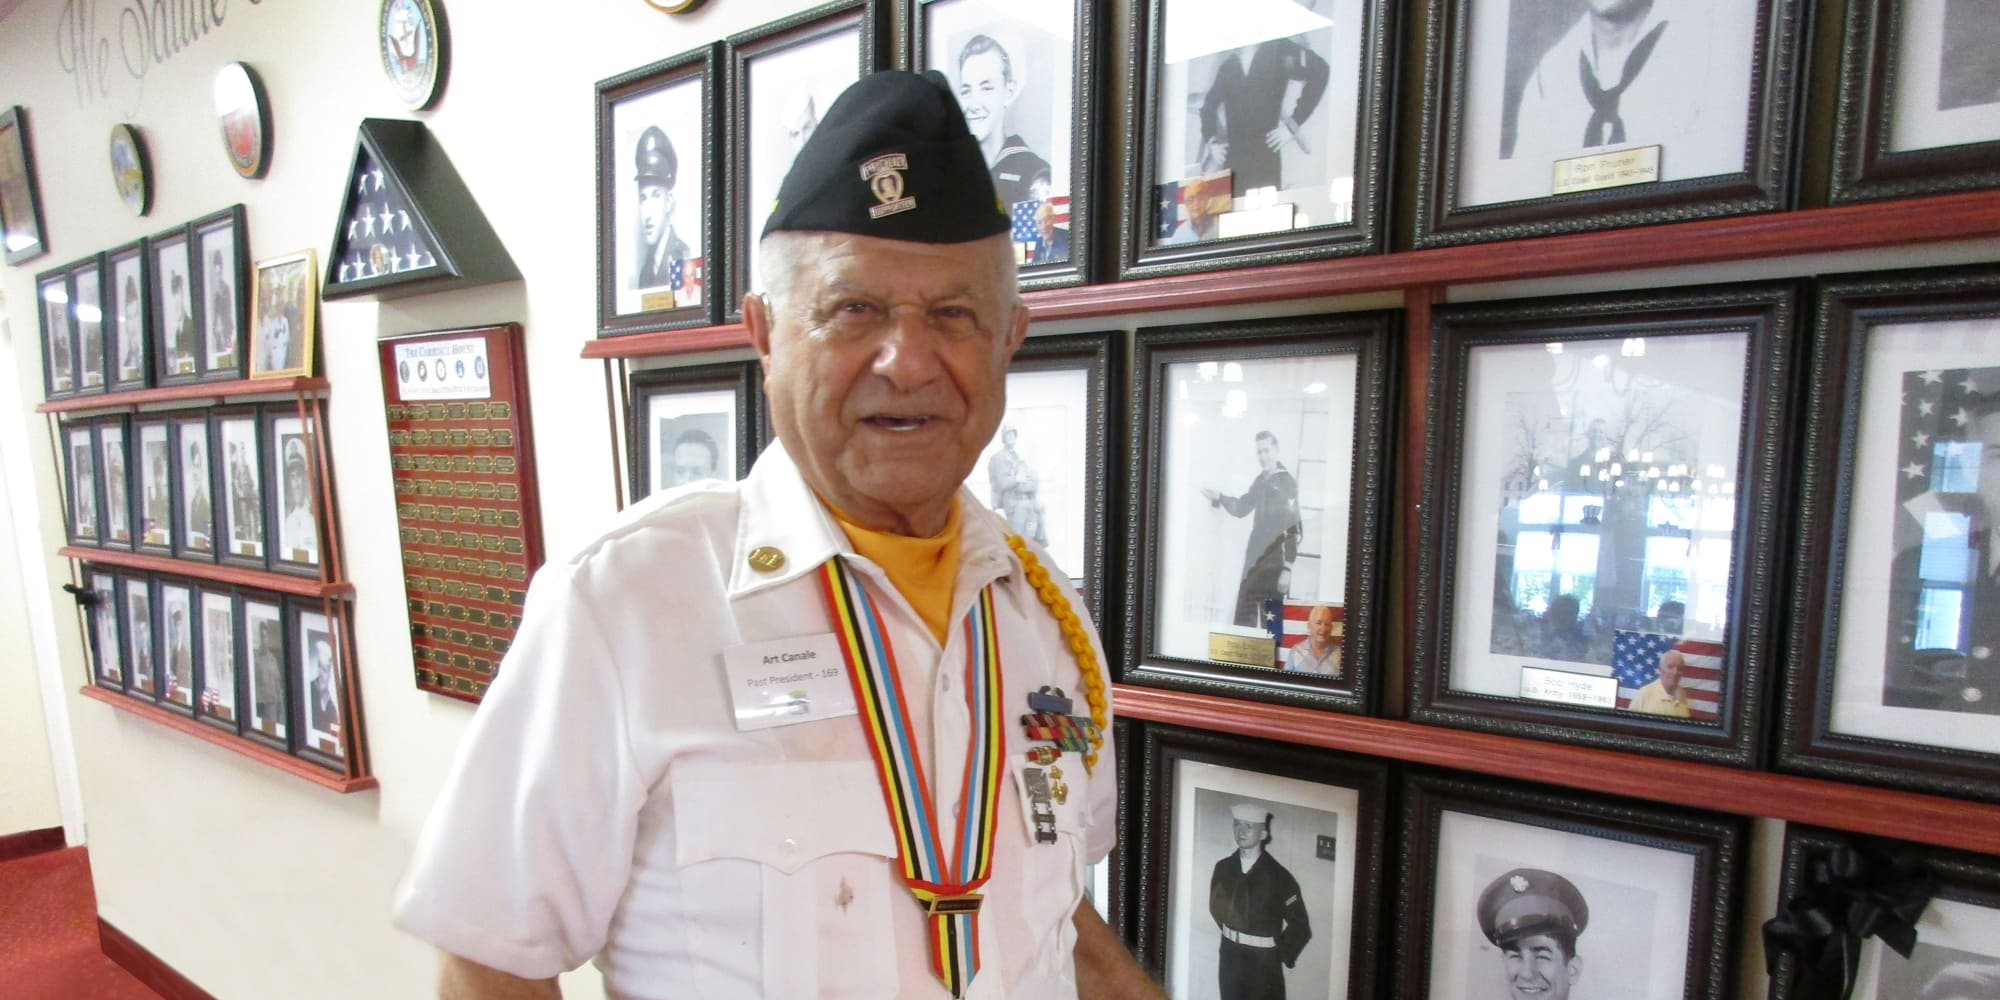 A veteran resident at Mulberry Gardens Memory Care in Munroe Falls, Ohio